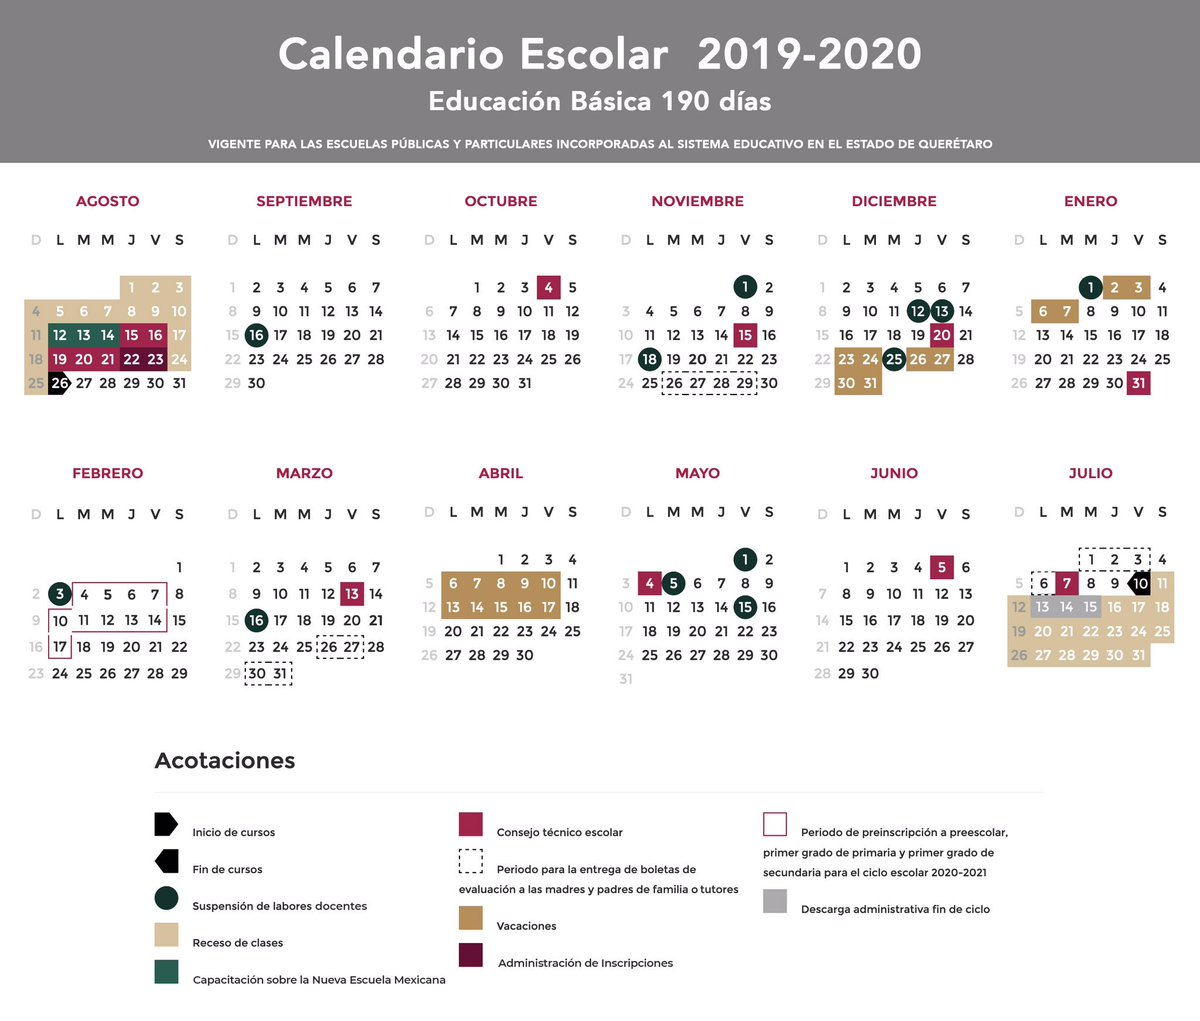 💣 Descargar Calendario Escolar 2019 A 2020 Sep regarding Calendario Escolar Sep 2020 2020